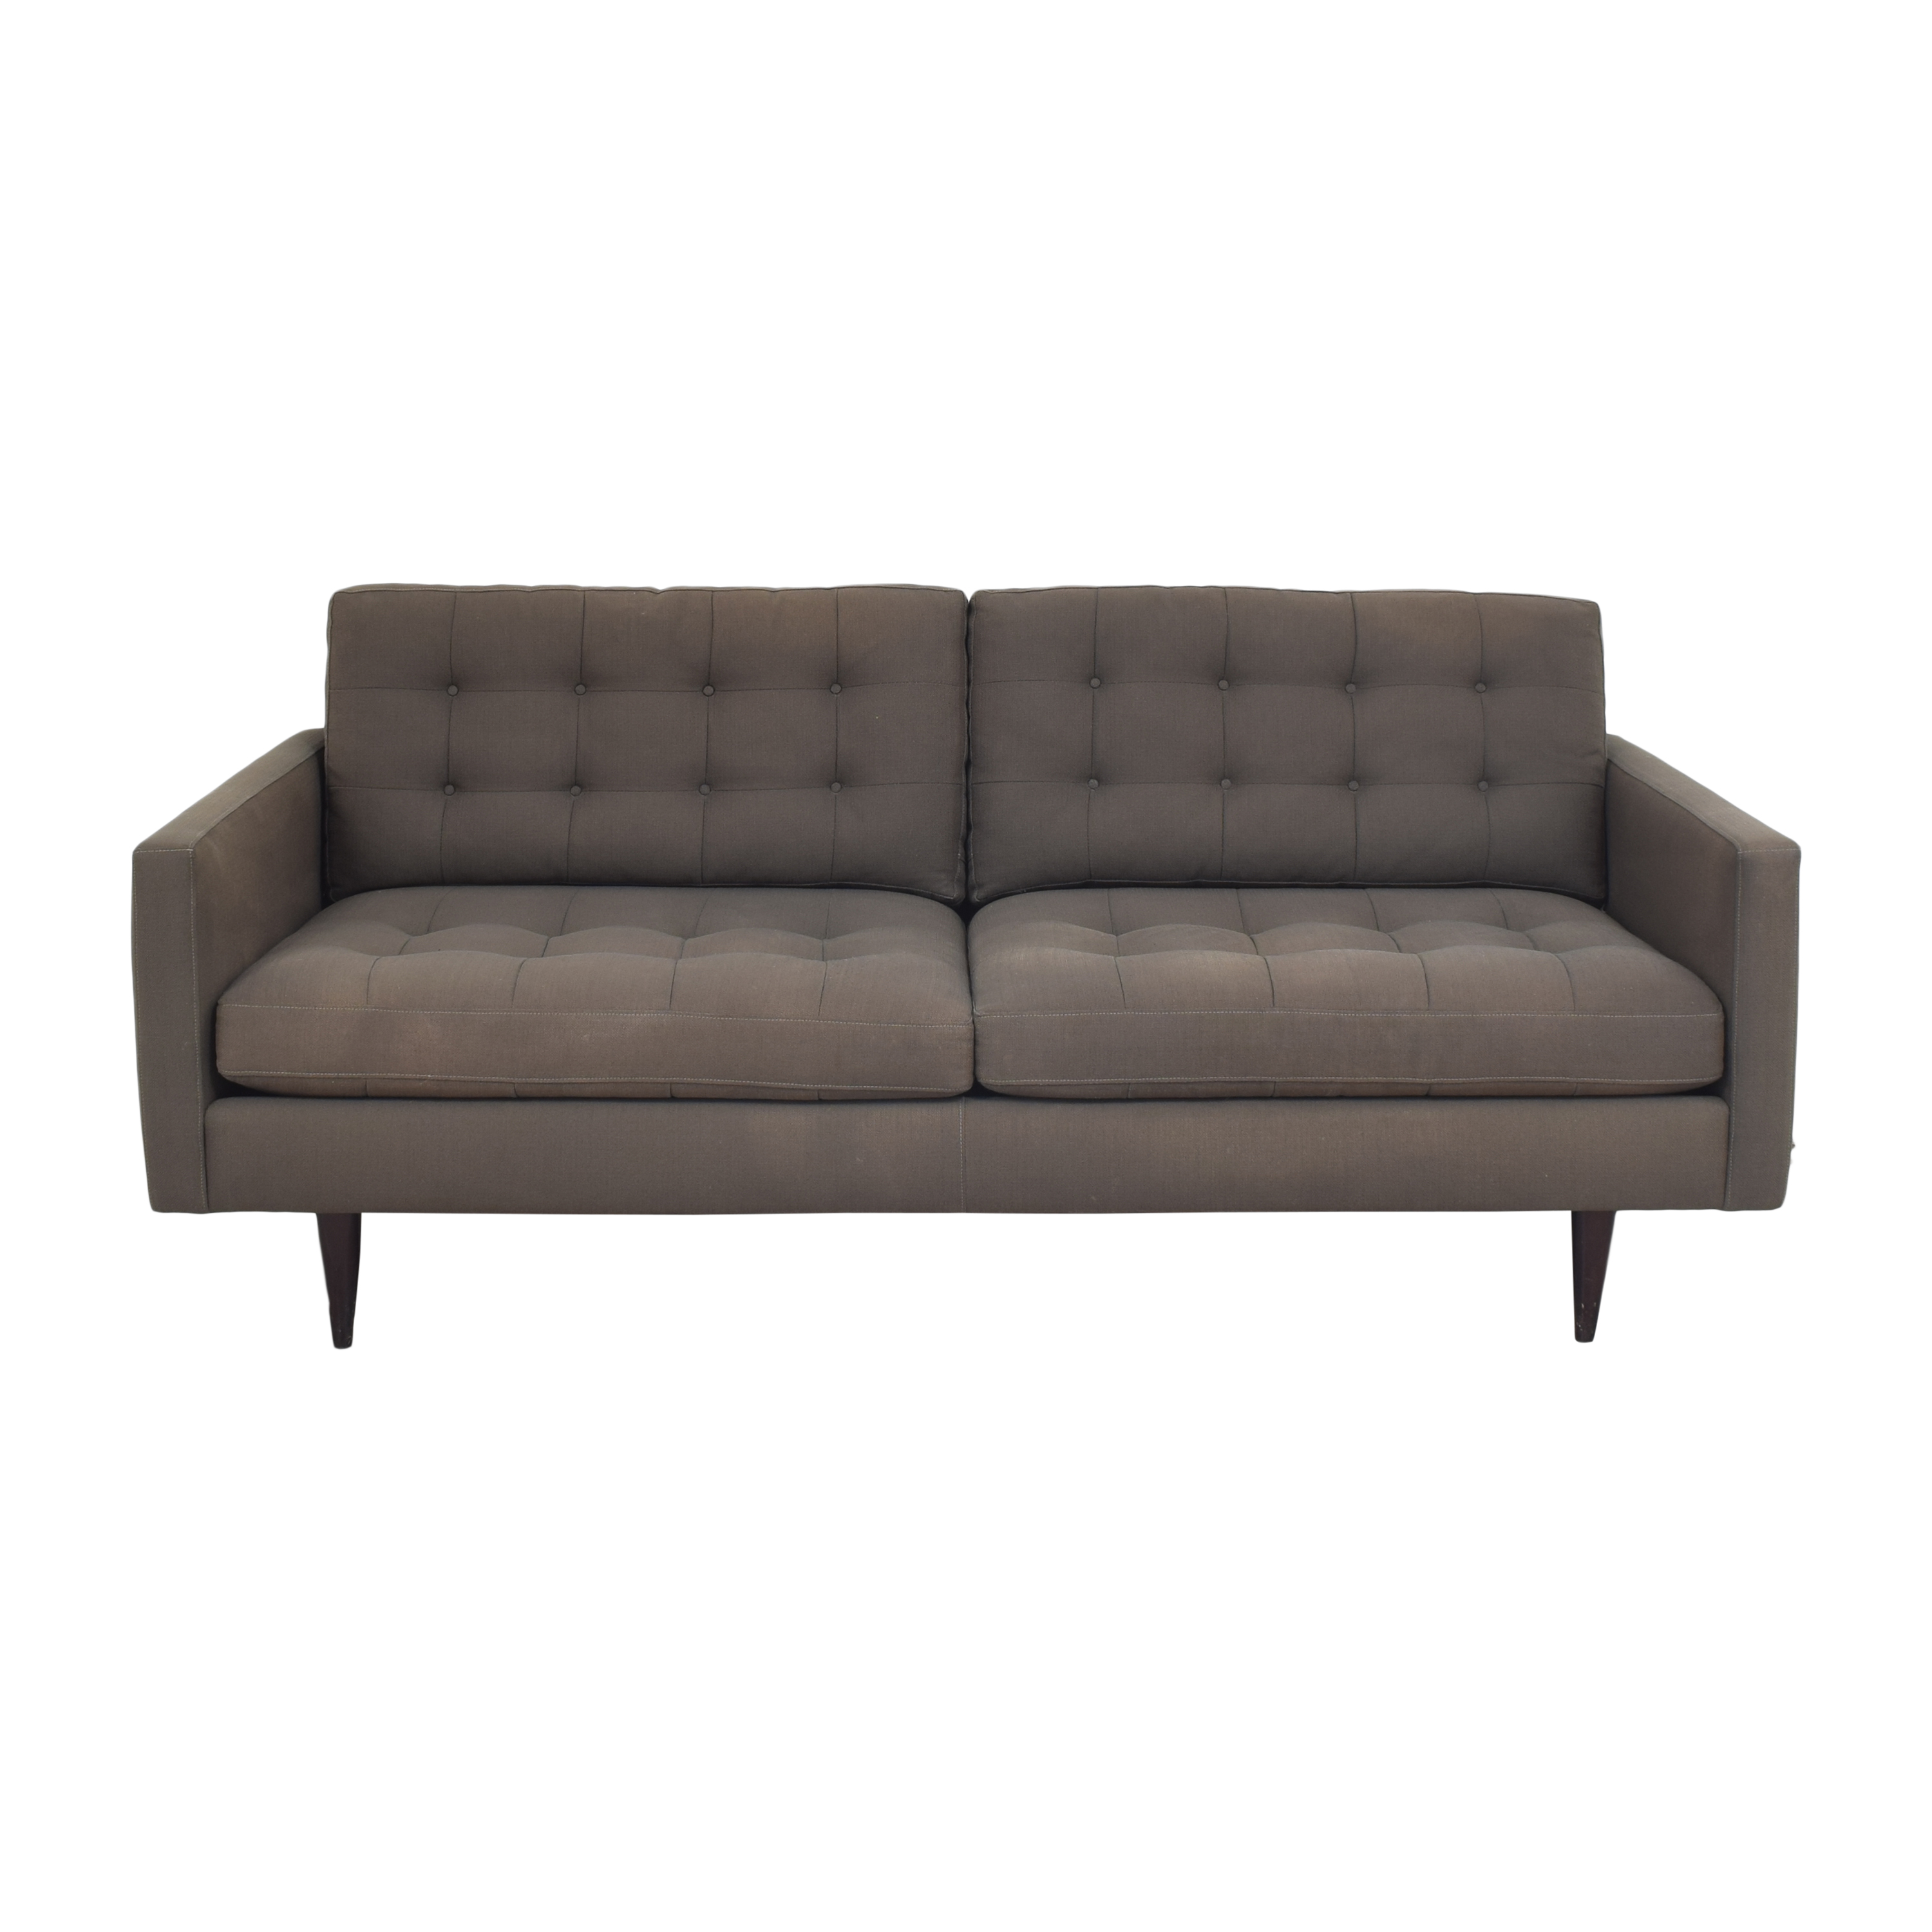 Crate & Barrel Petrie Midcentury Apartment Sofa / Sofas